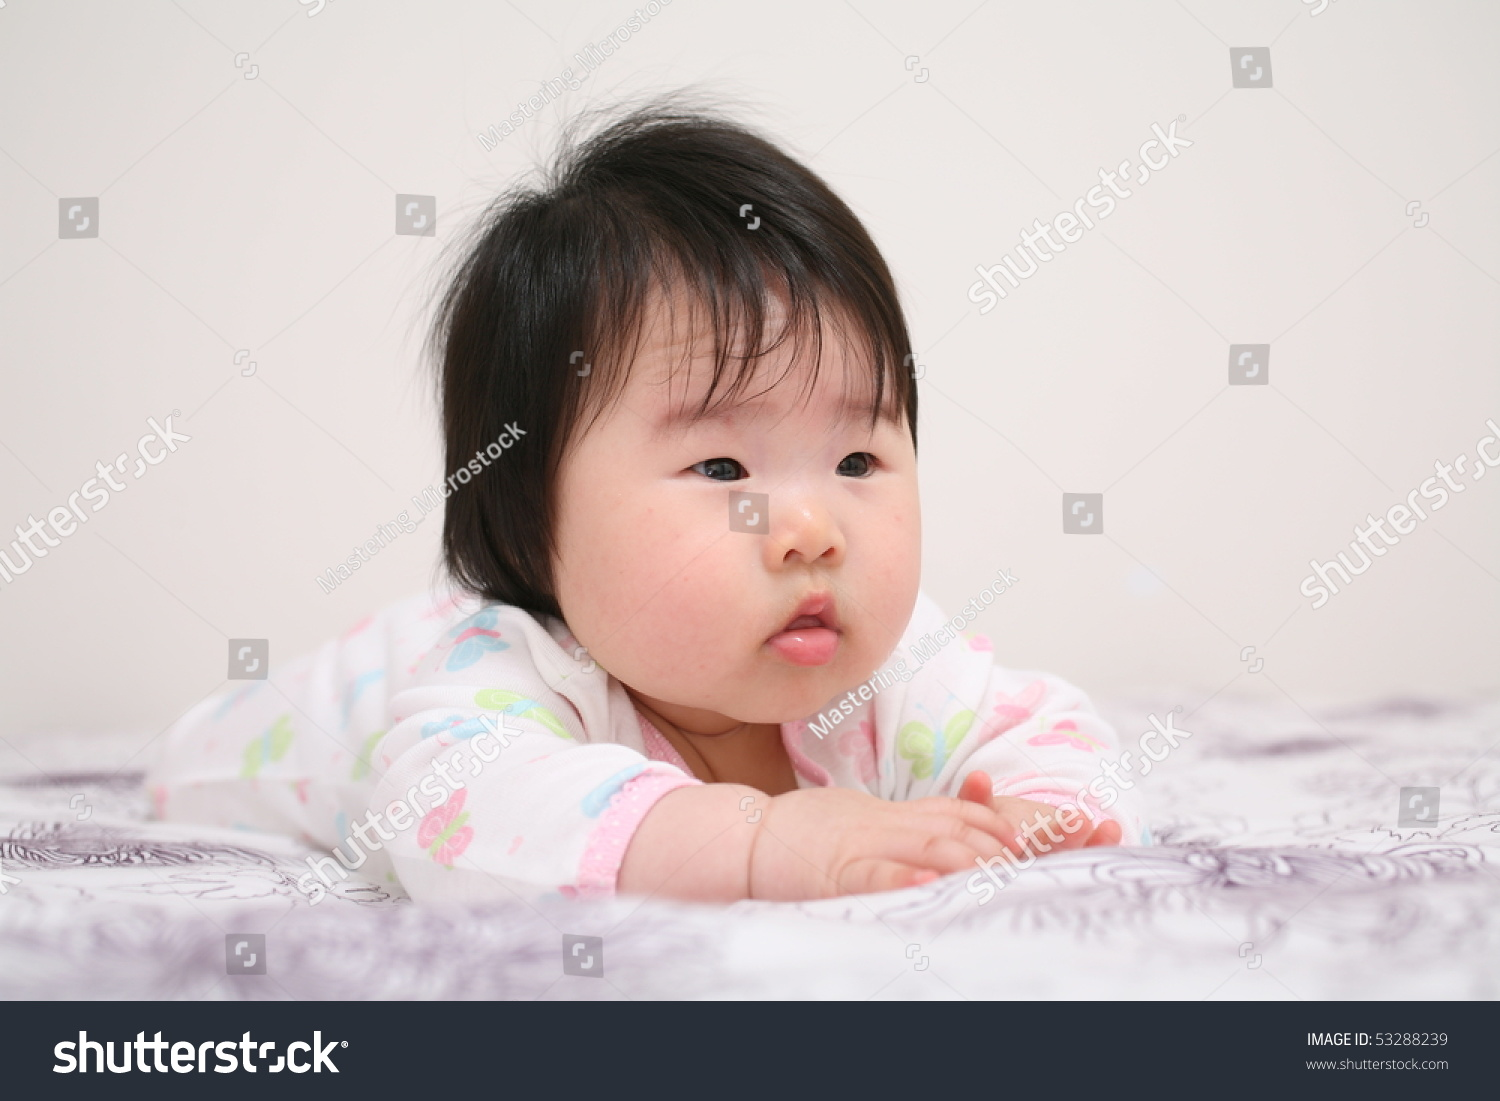 very cute asian baby infant girl stock photo (safe to use) 53288239